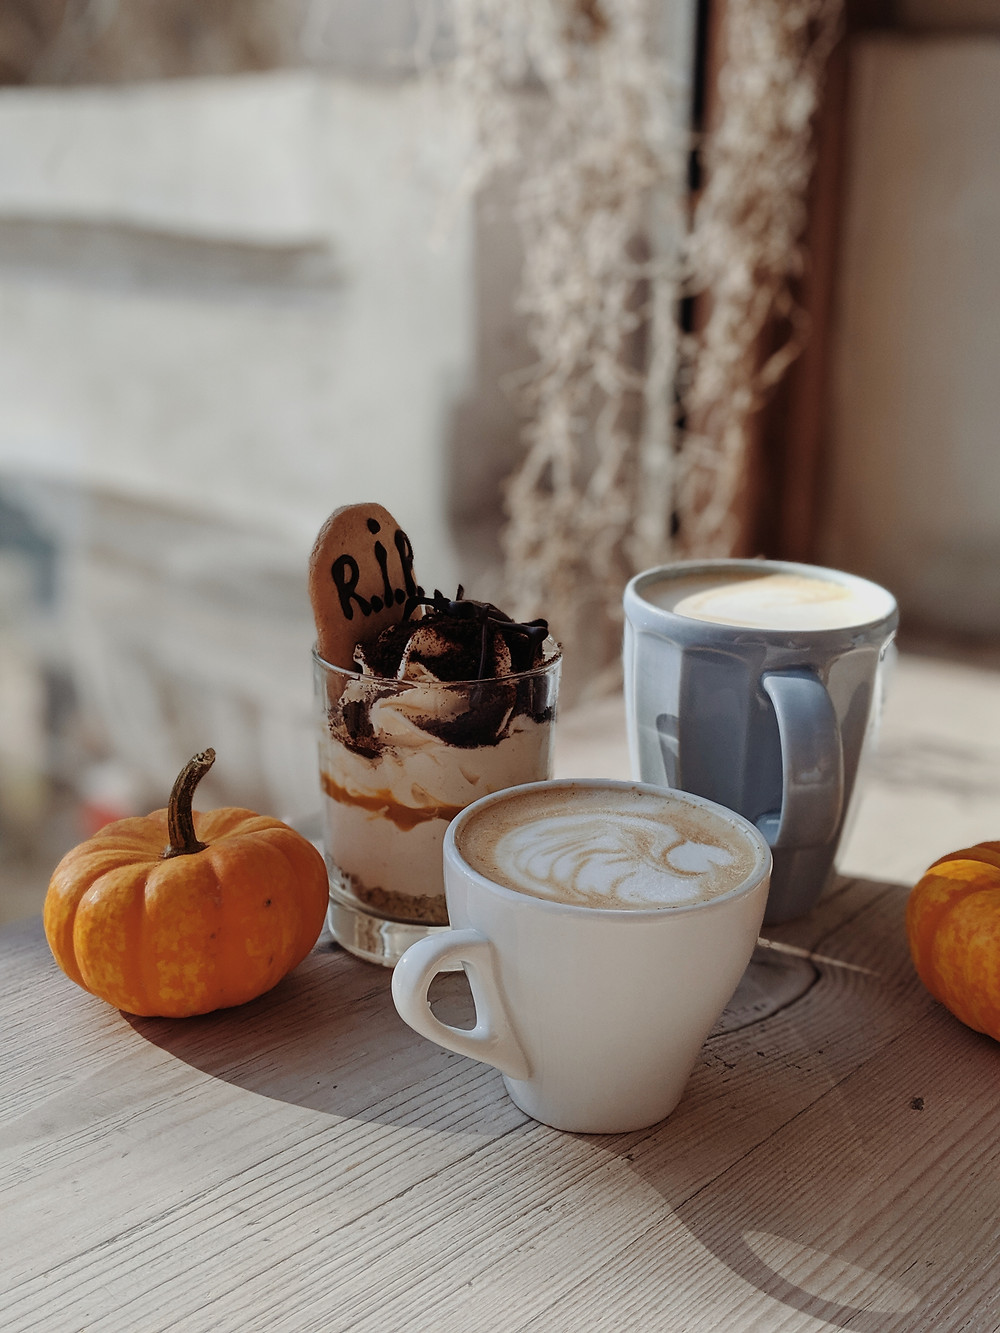 Cups of coffee with a Halloween-themed cookie desert, all placed beside two mini pumpkins.